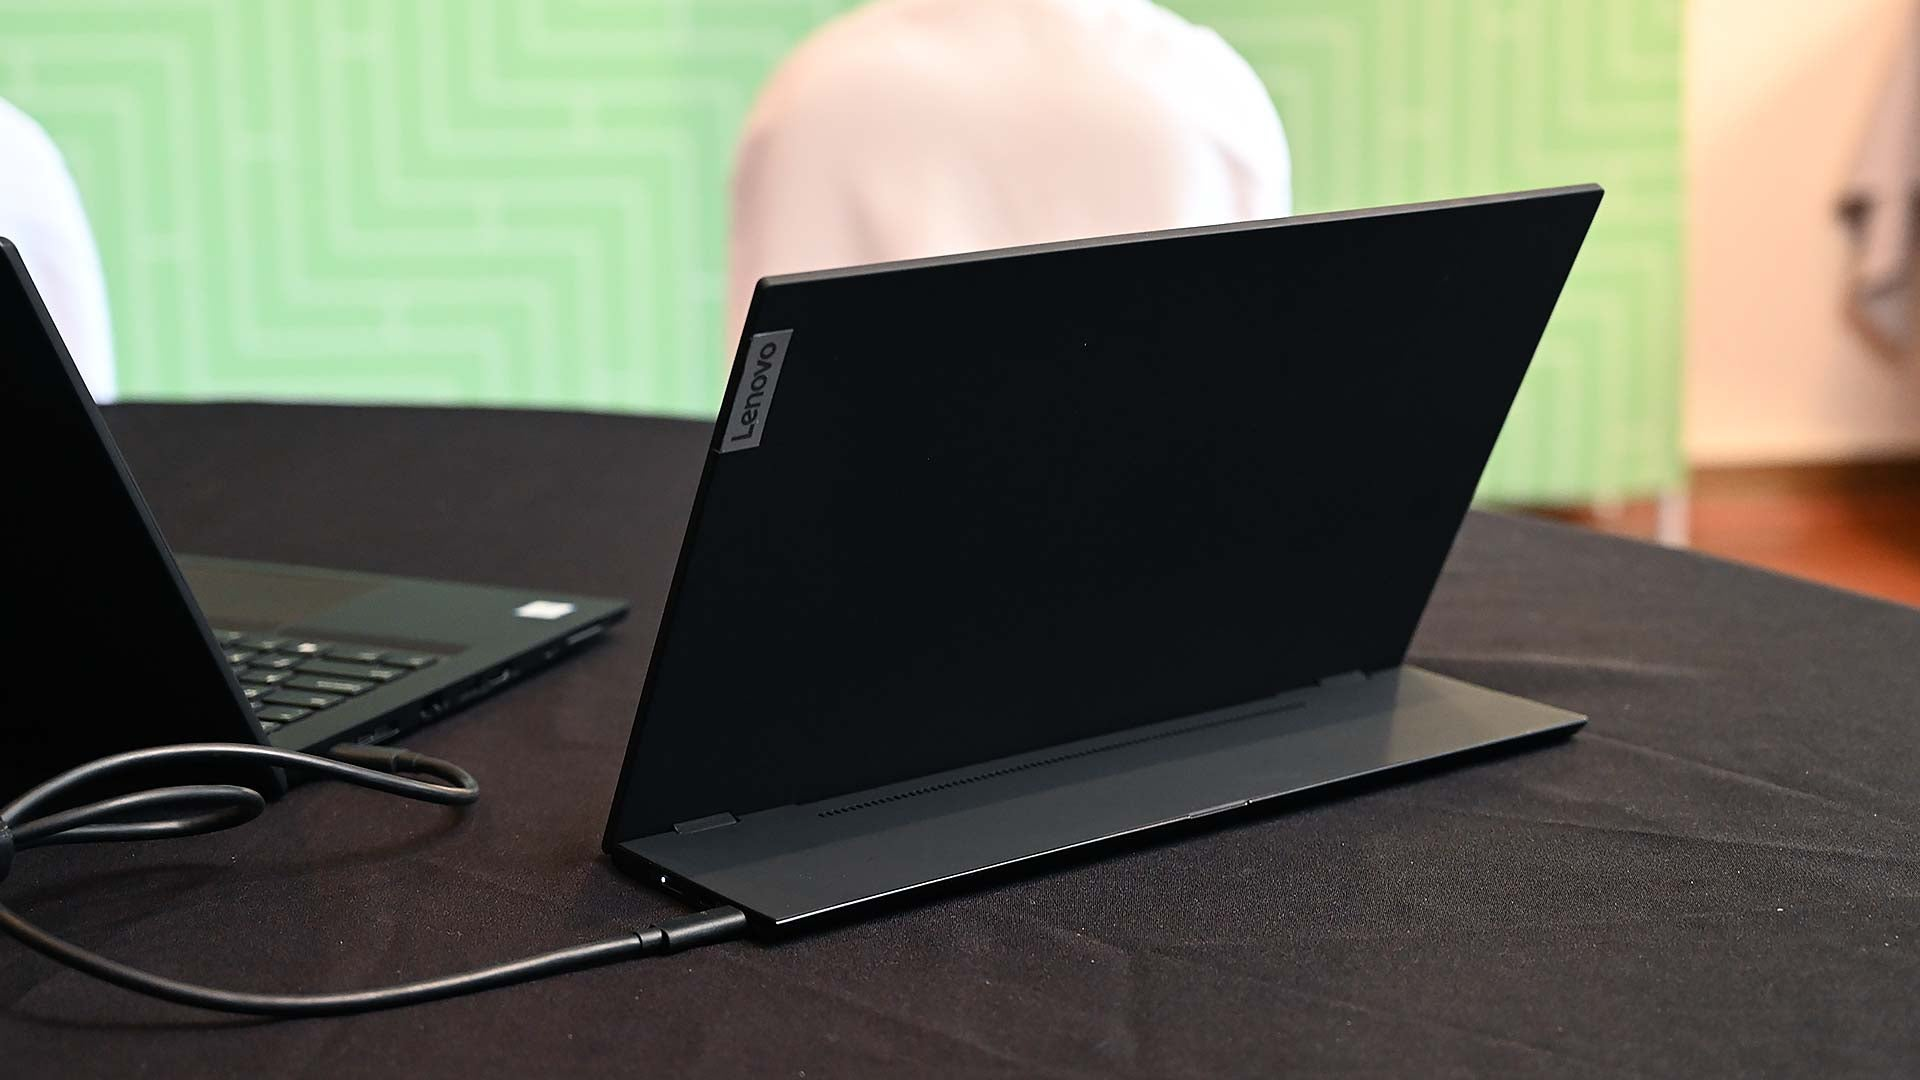 Lenovo's External USB-C Display Could Be on Every Laptop